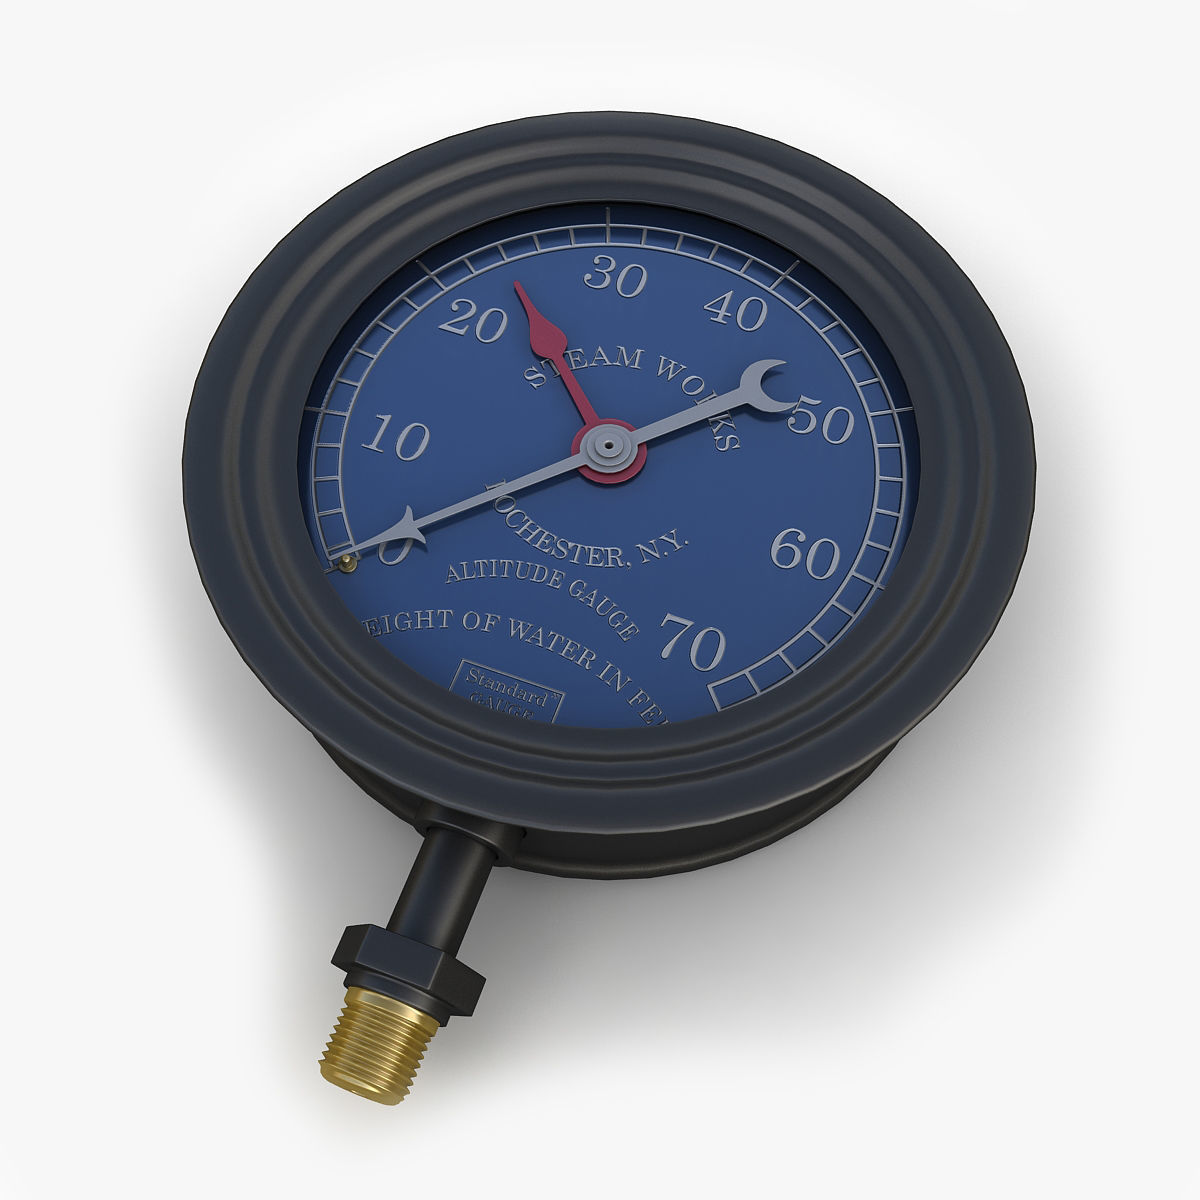 Vintage large steam pressure gauge 2